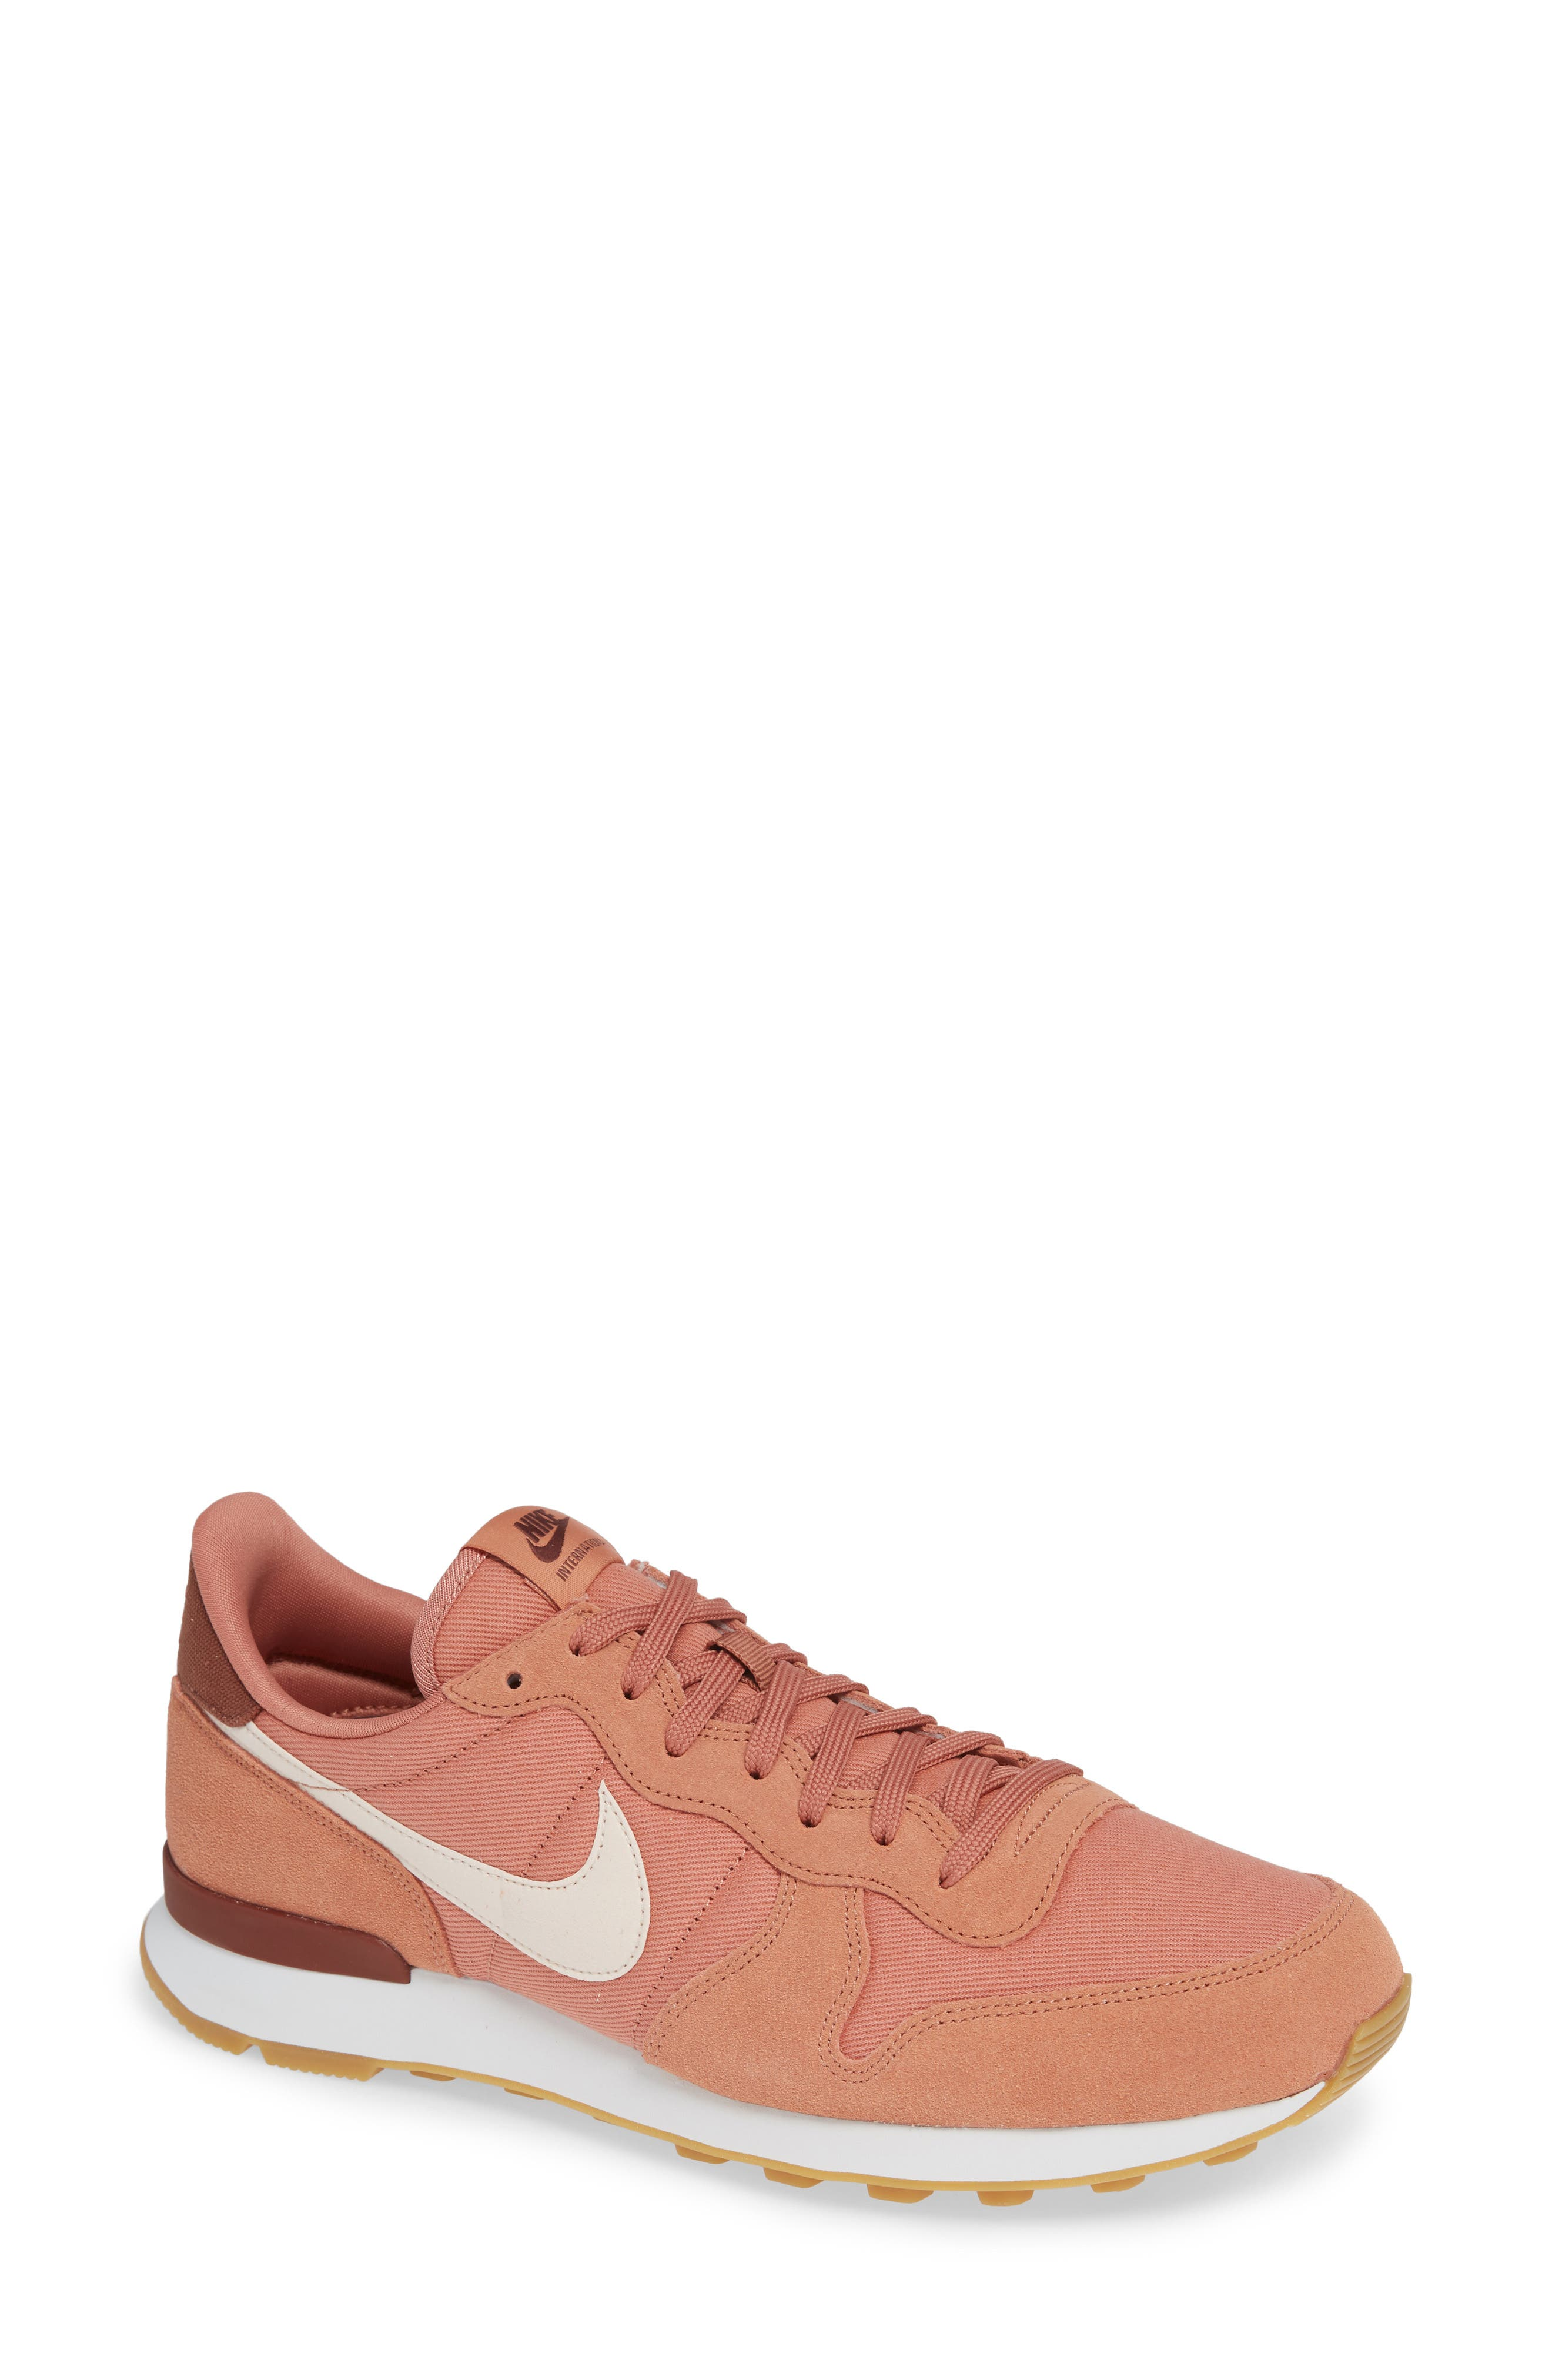 'Internationalist' Sneaker,                             Main thumbnail 1, color,                             950